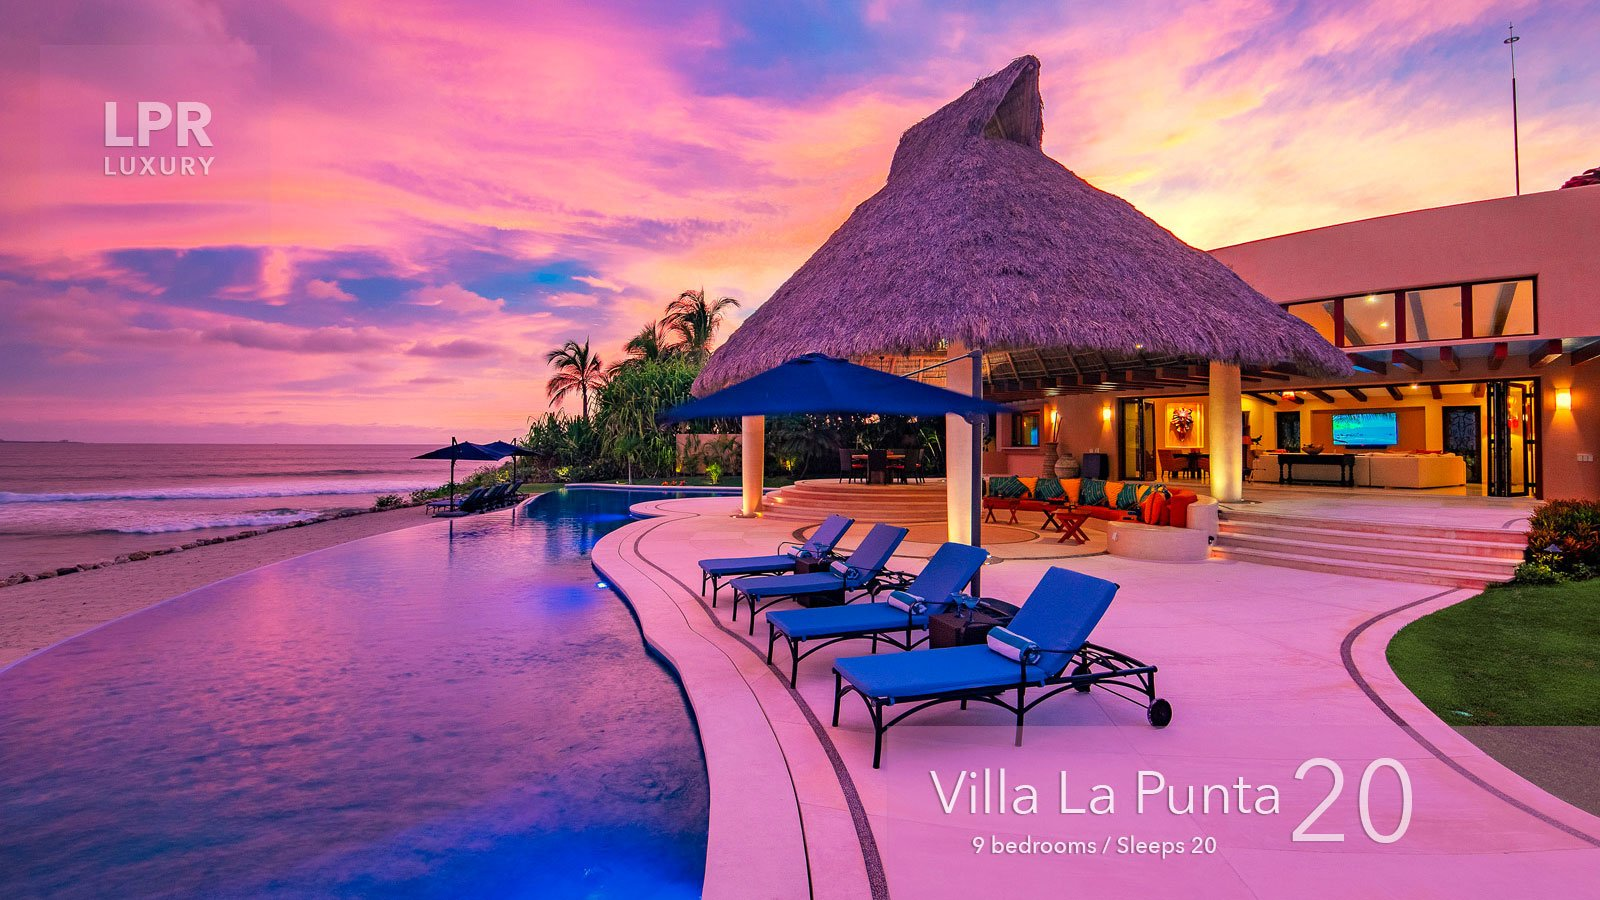 Villa La Punta 20 - Luxury Punta Mita Resort real estate and vacation rental villa - Destino